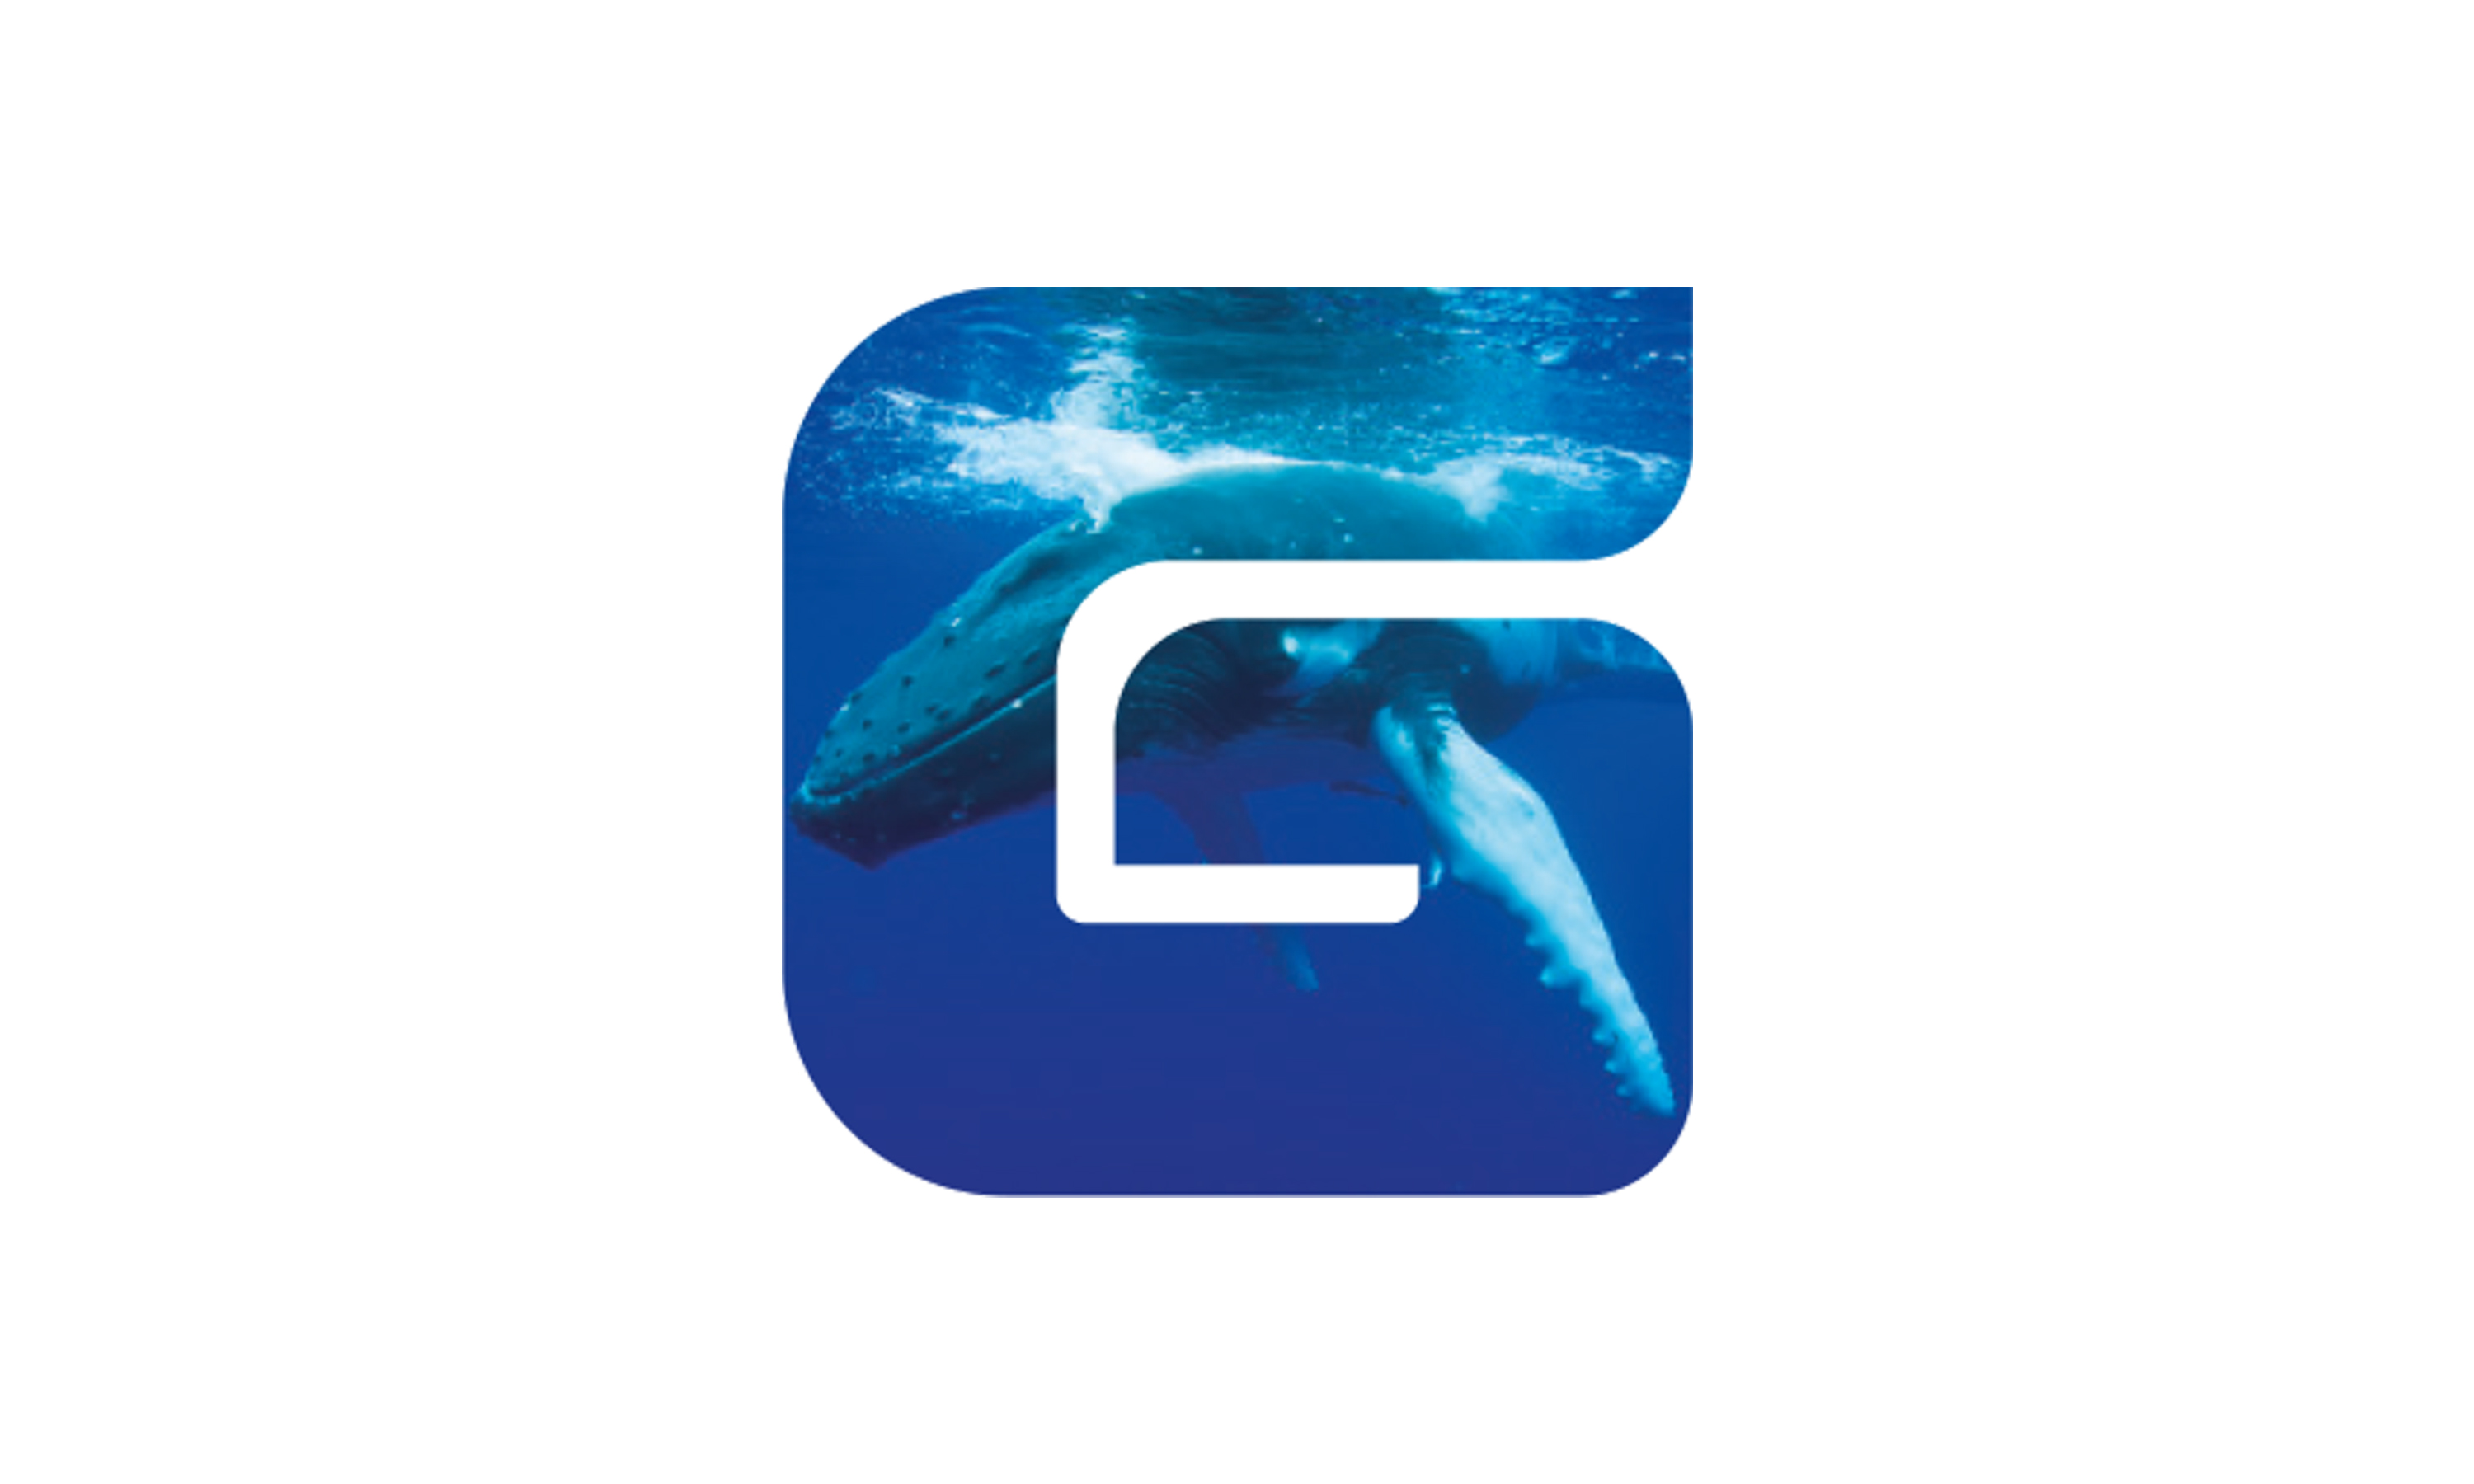 Branding by Neon - designed by Dana Robertson - GEMS Education - GEMS Education G icon featuring a whale within the letterform